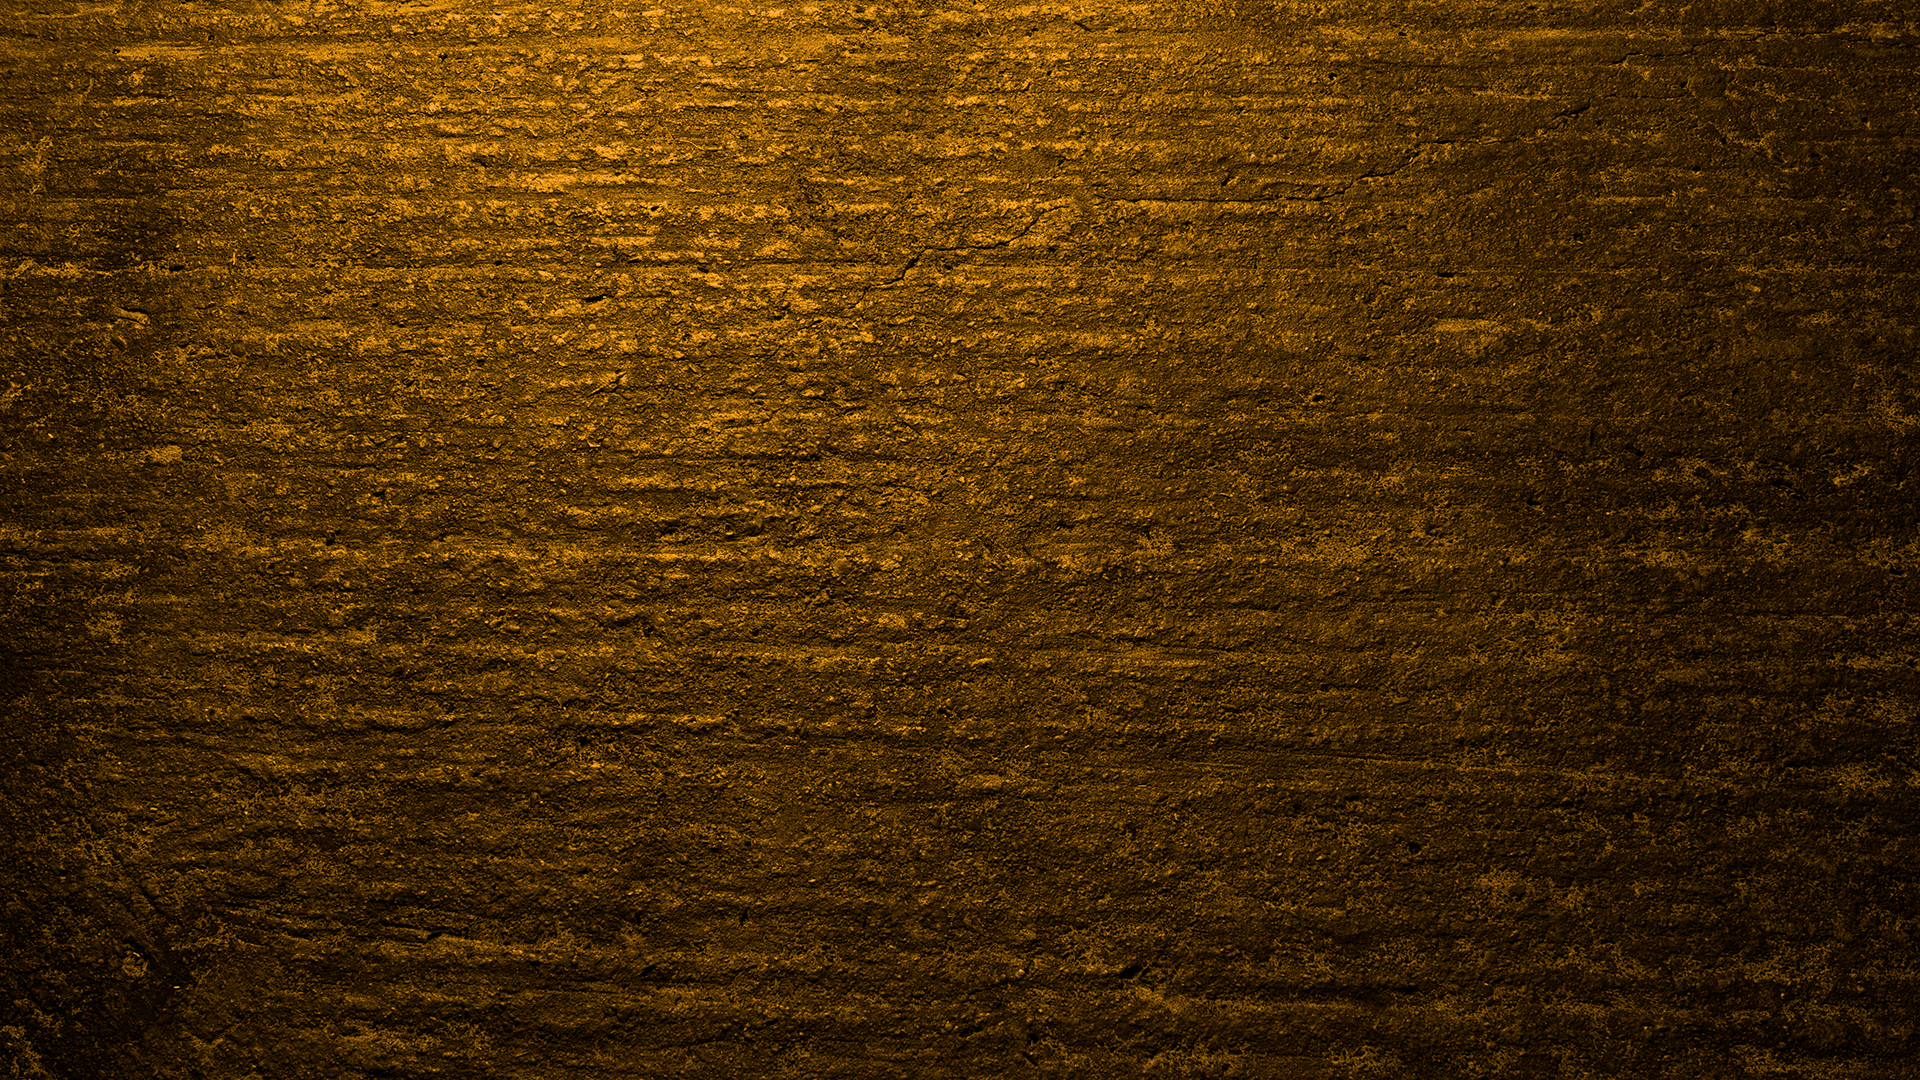 Brown Grunge Concrete Texture HD 1920 x 1080p